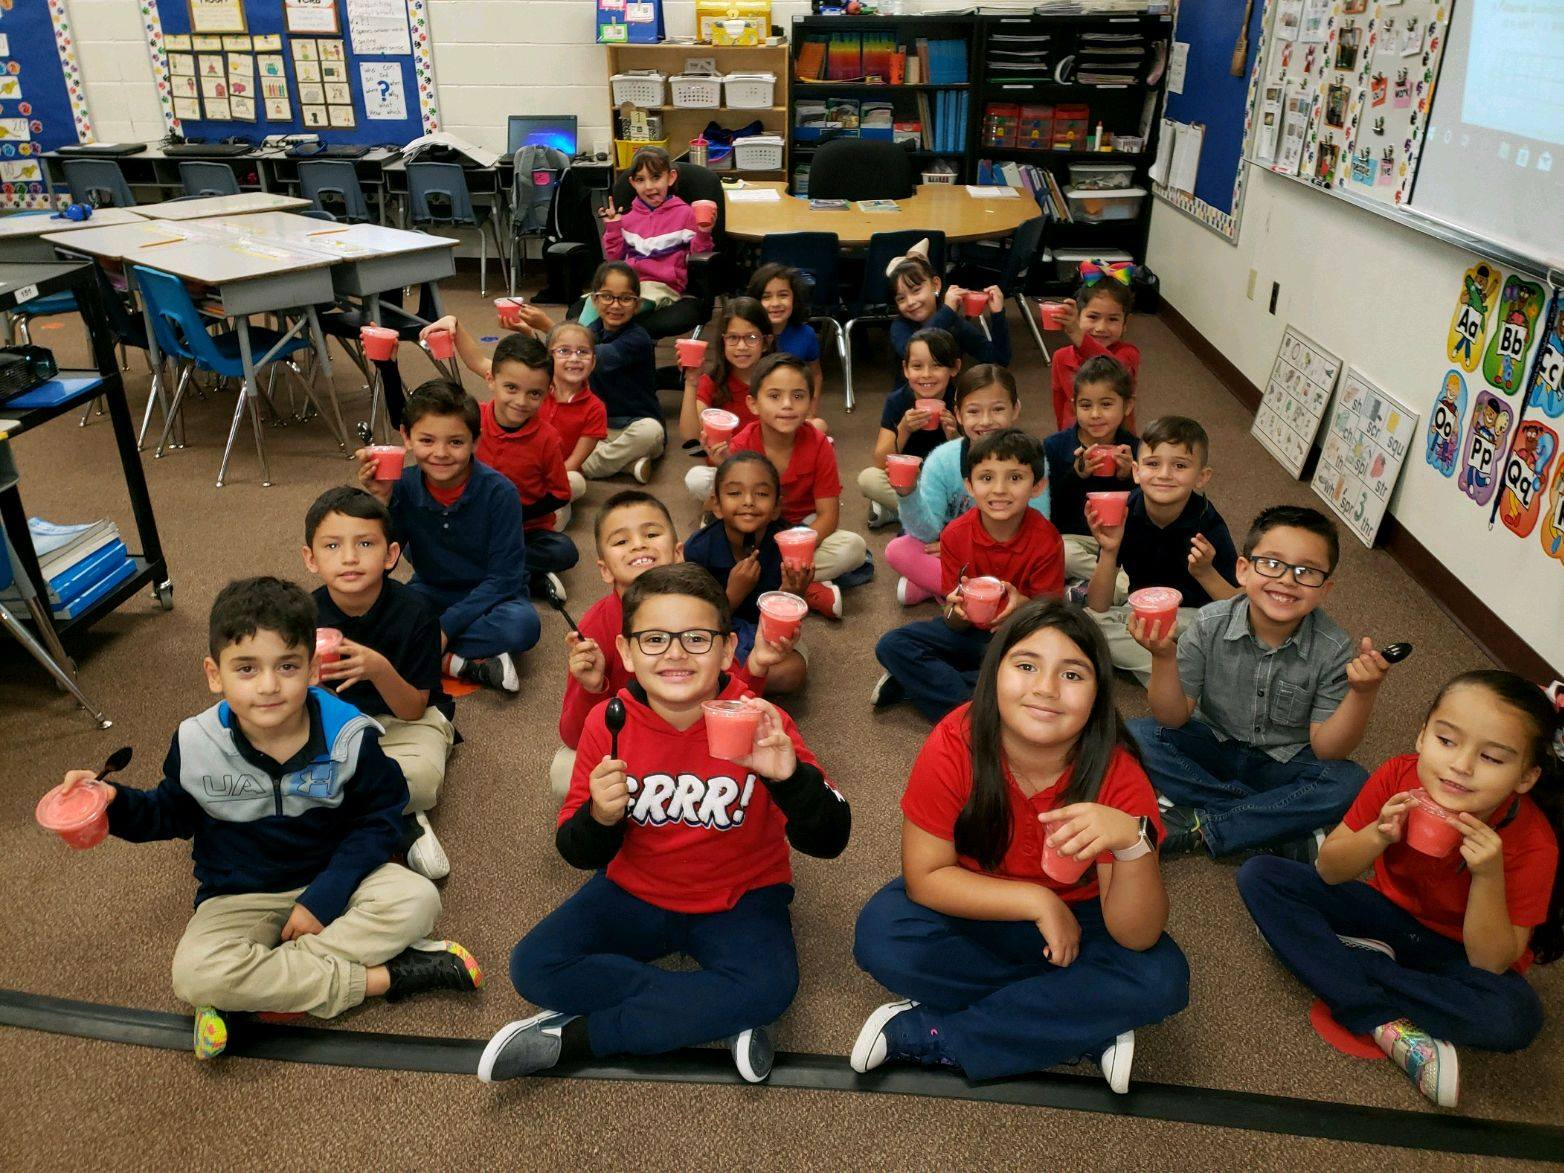 Every Year, During The Month Of November, SCVUSD No 35 Schools Participate In The Rio Rico Rotary Coin Wars. Students Are Tasked With Bringing In Loose Change To Benefit Families In Rio Rico Who Are Less Fortunate During The Holiday Season. Photo Courtesy Santa Cruz Valley Unified School District # 35